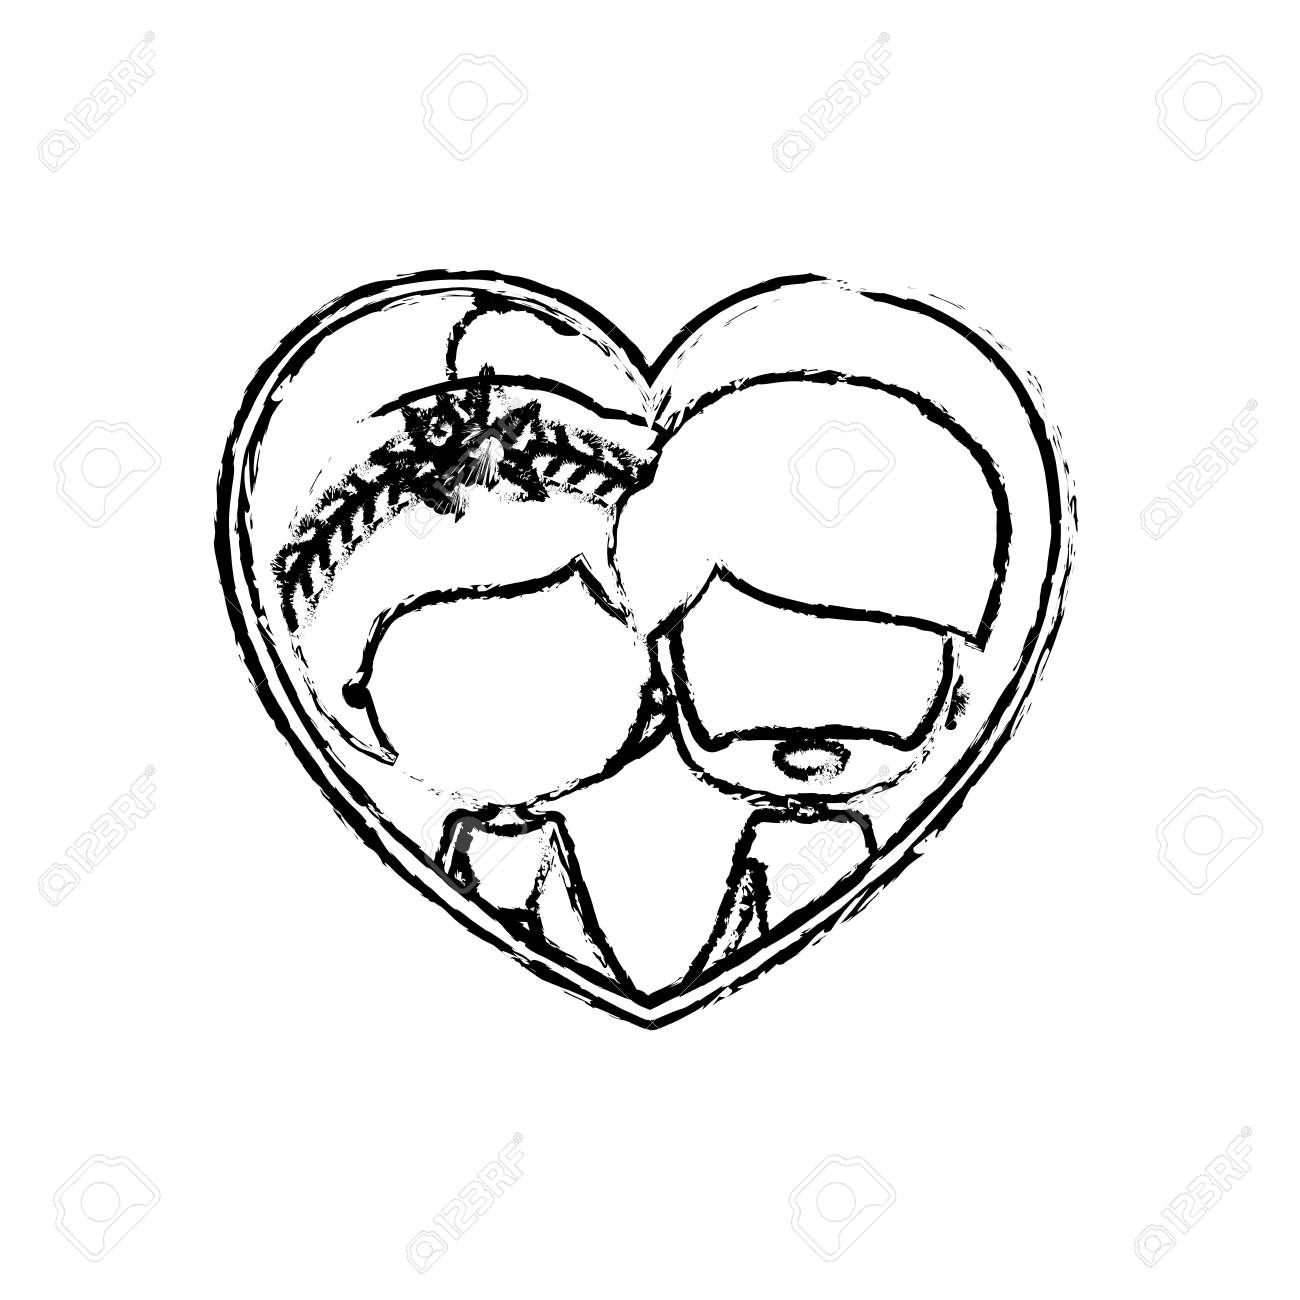 1300x1300 Blurred Silhouette Heart Shape With Caricature Faceless Couple